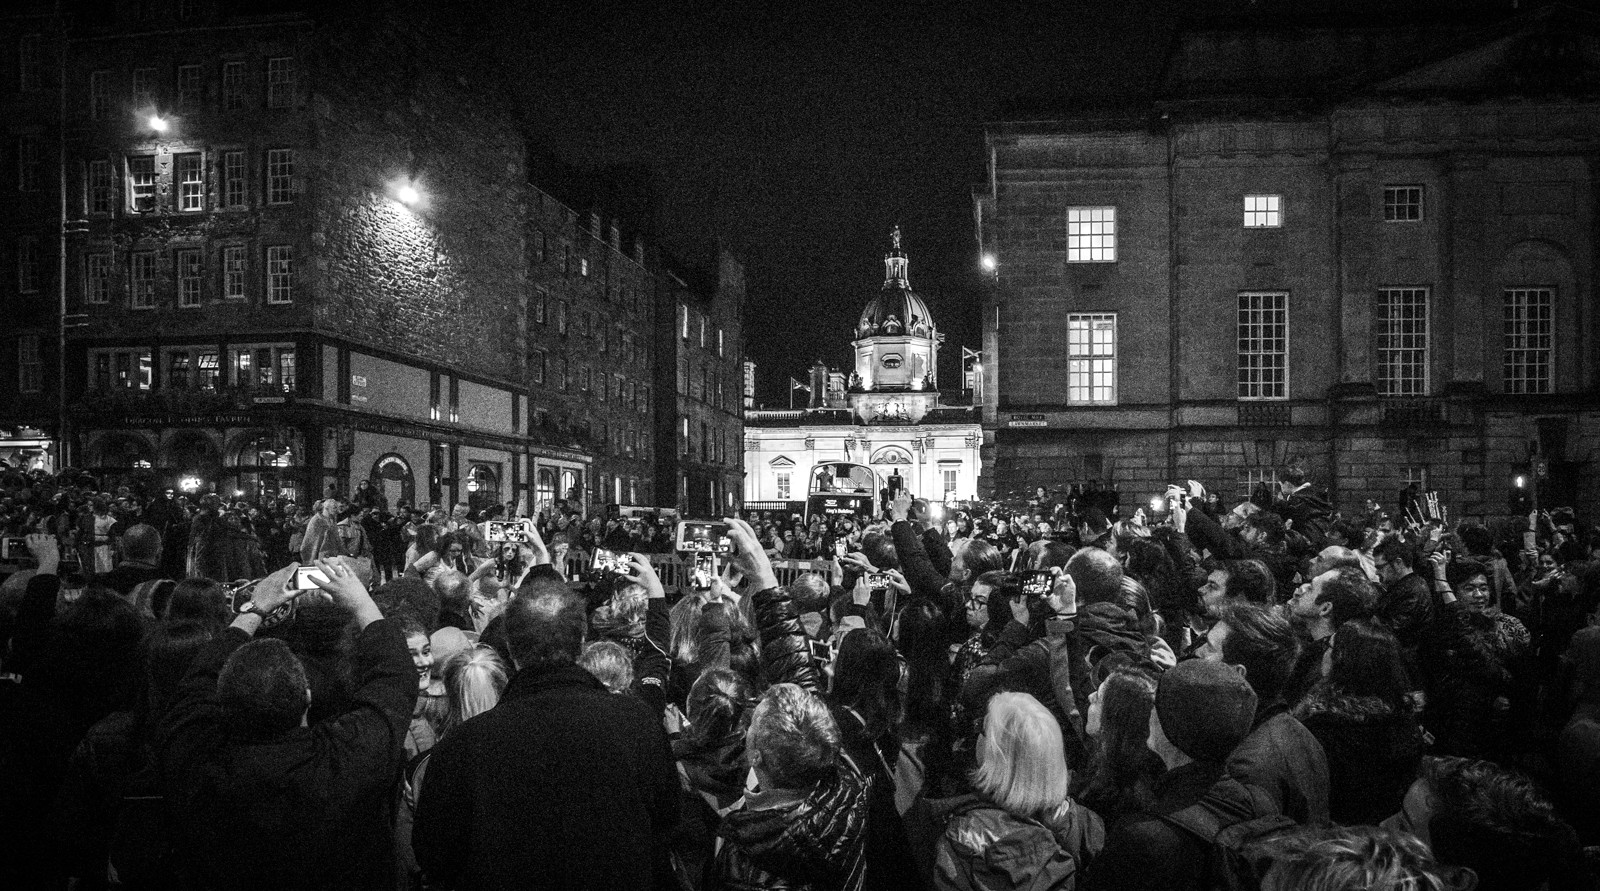 MONO - Crowd of Photojournalists by Nigel Bell (8 marks)